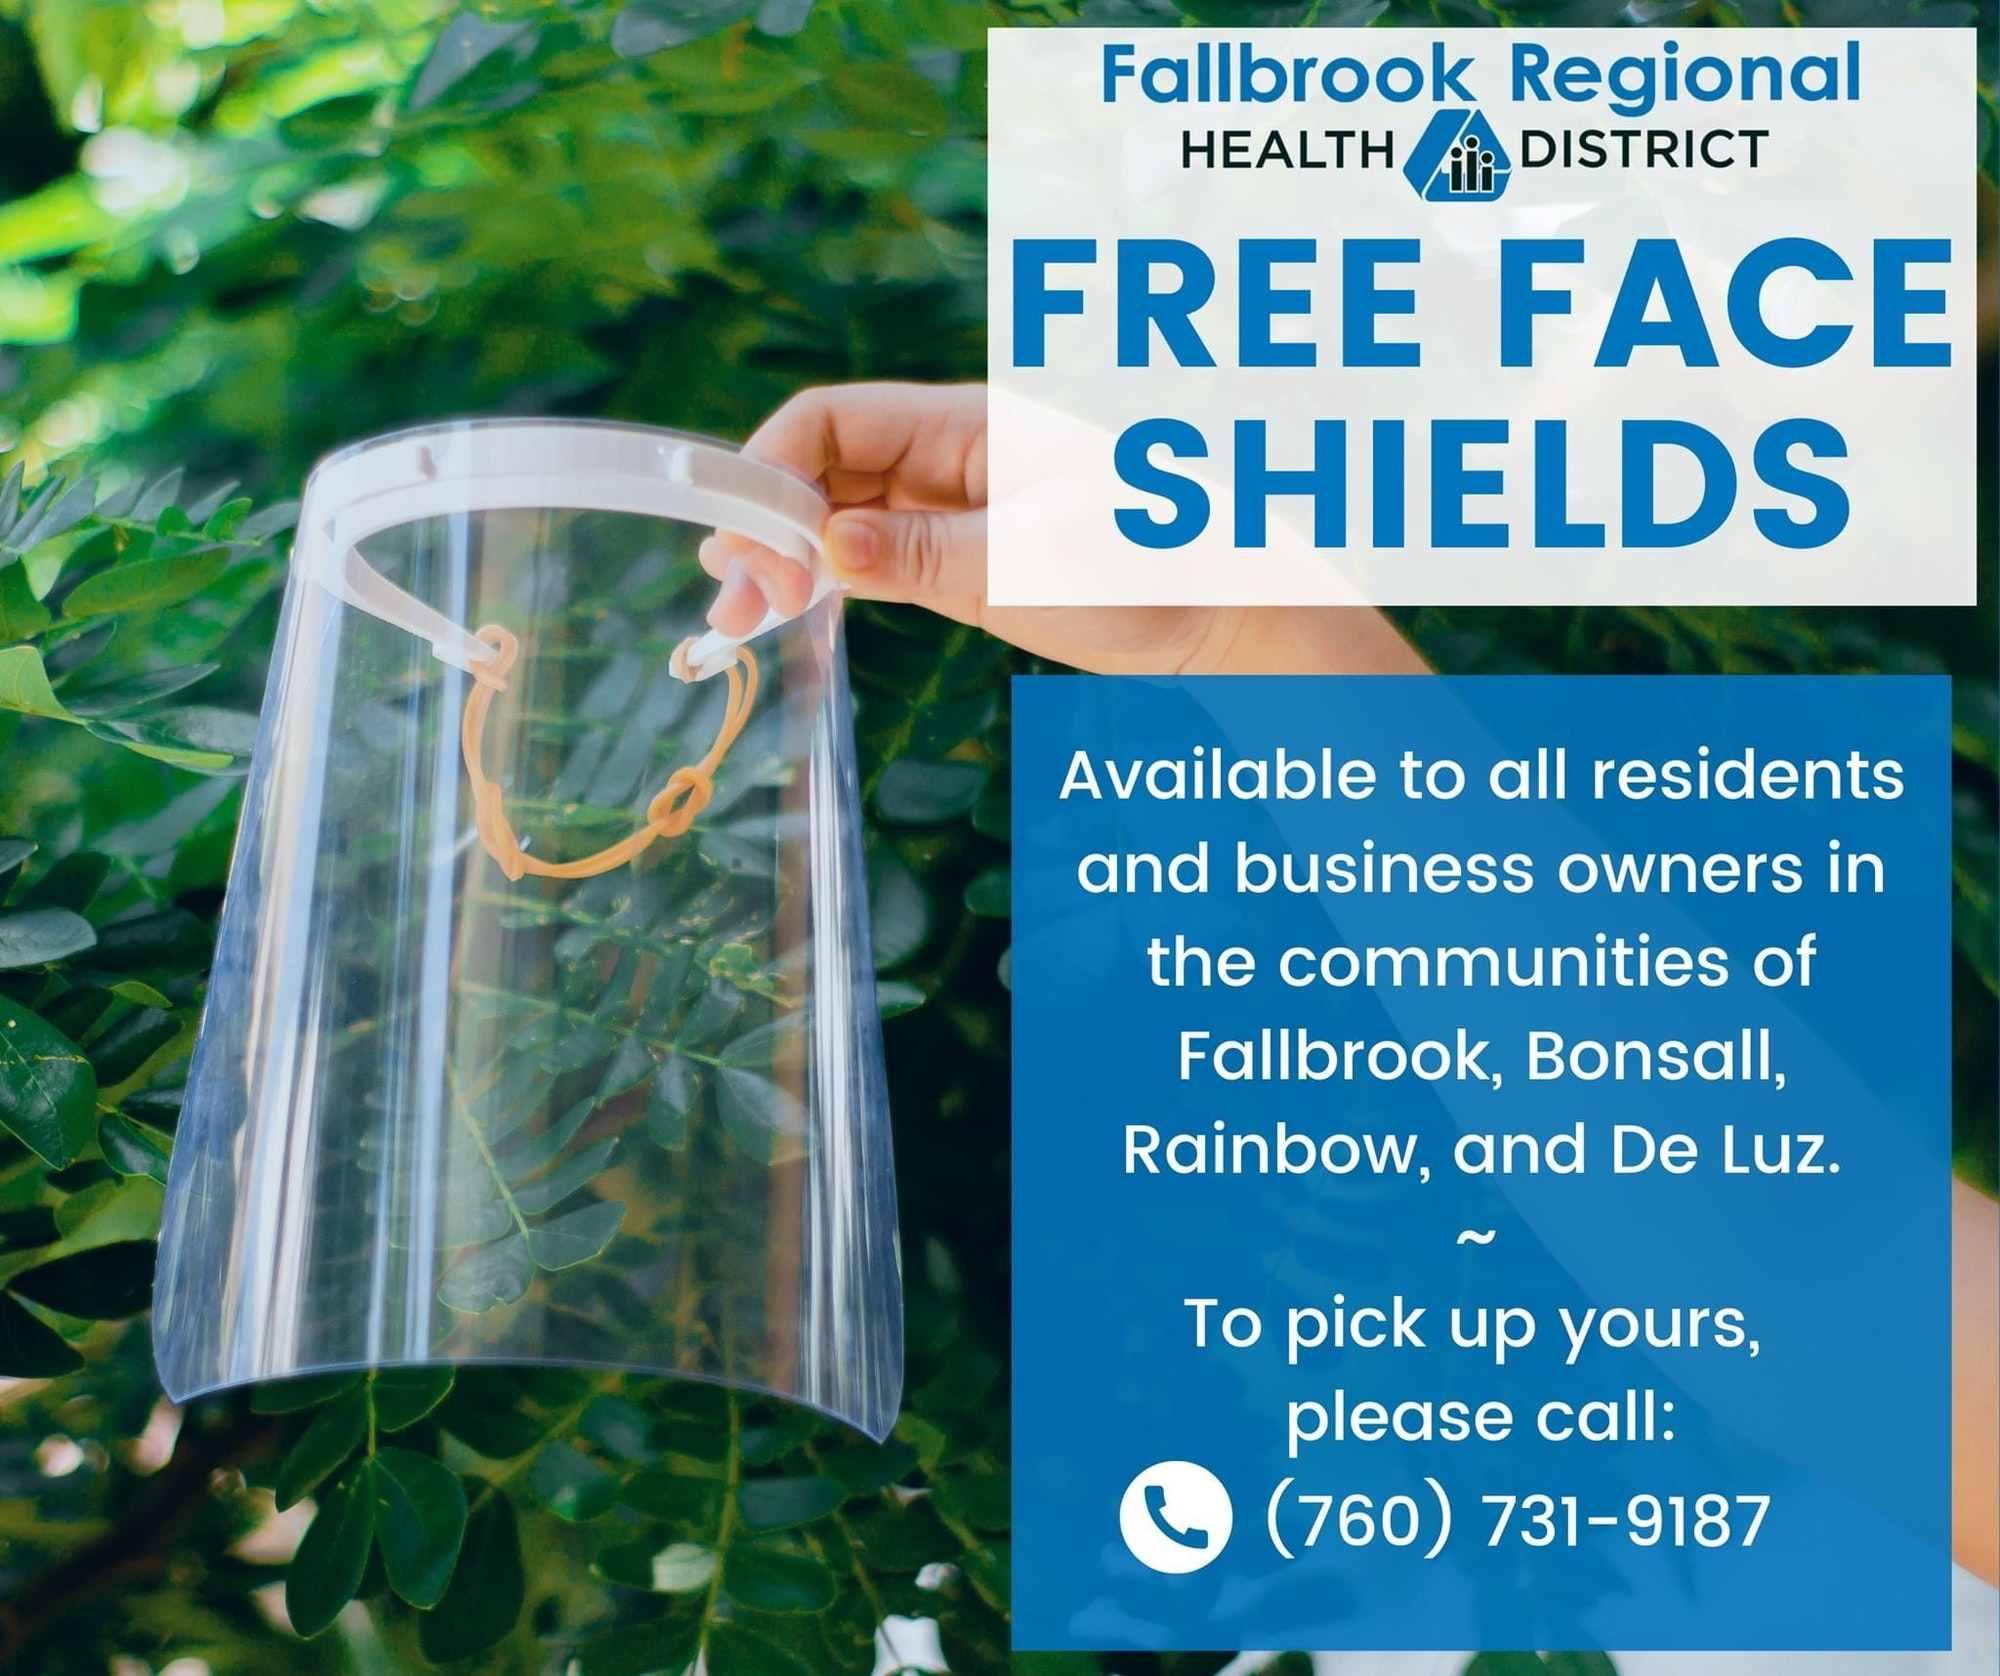 Free Face Shields. Available to all residents and business owners in the communities of Fallbrok, Bonsall, Rainbow, and De Luz. To pick up yours, please call (760) 731-9178